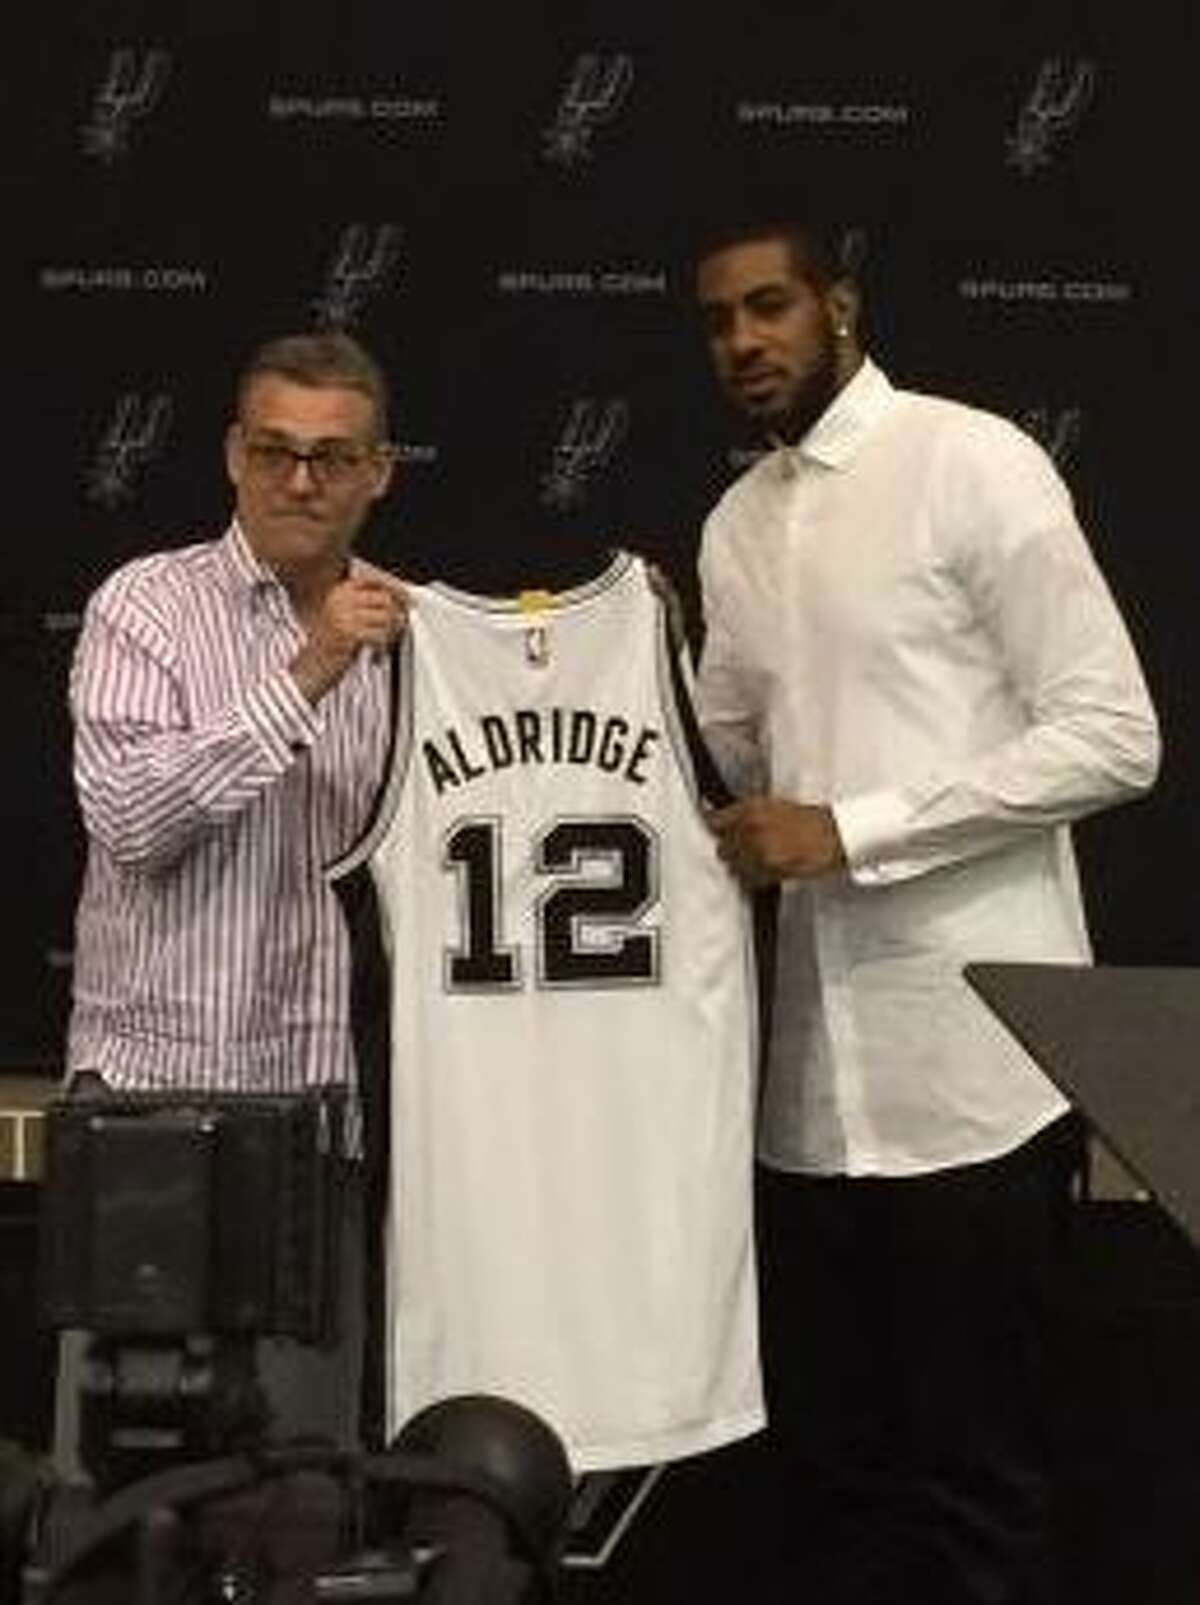 10. Welcome to S.A., LA There's not much left to say here that hasn't already been said. The Spurs won the summer when they won Aldridge over. San Antonio signed the four-time All-Star to a four-year, $84,072,030 contract through the 2018-2019 season.